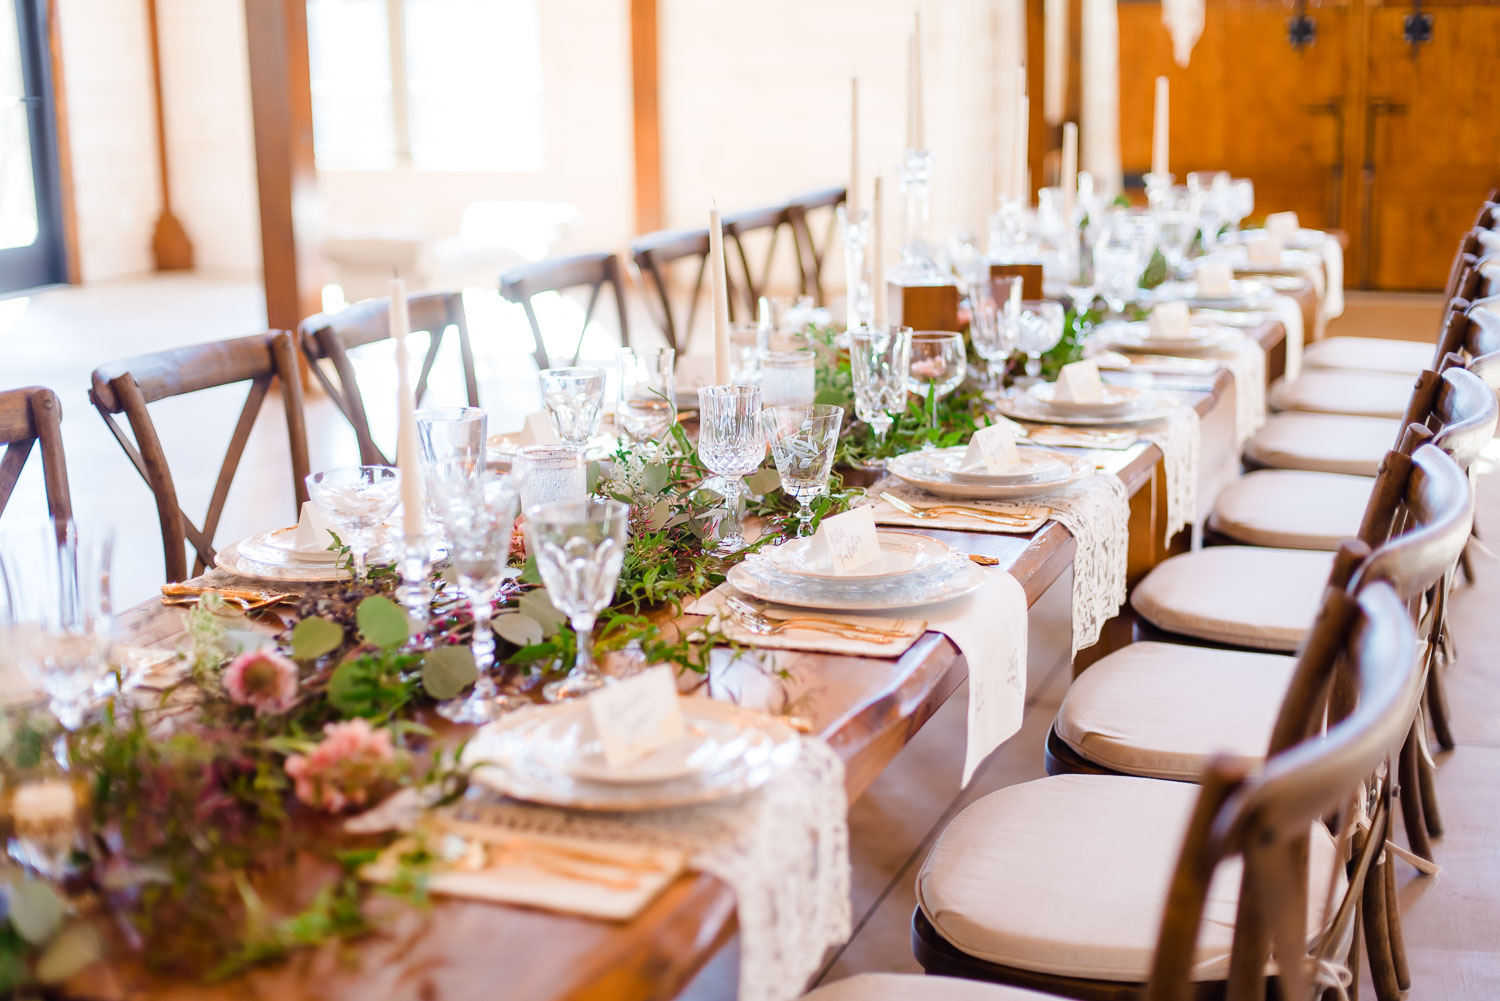 Vintage Elegance stylledplace setting with greenery center pieces on large wooden farm tables